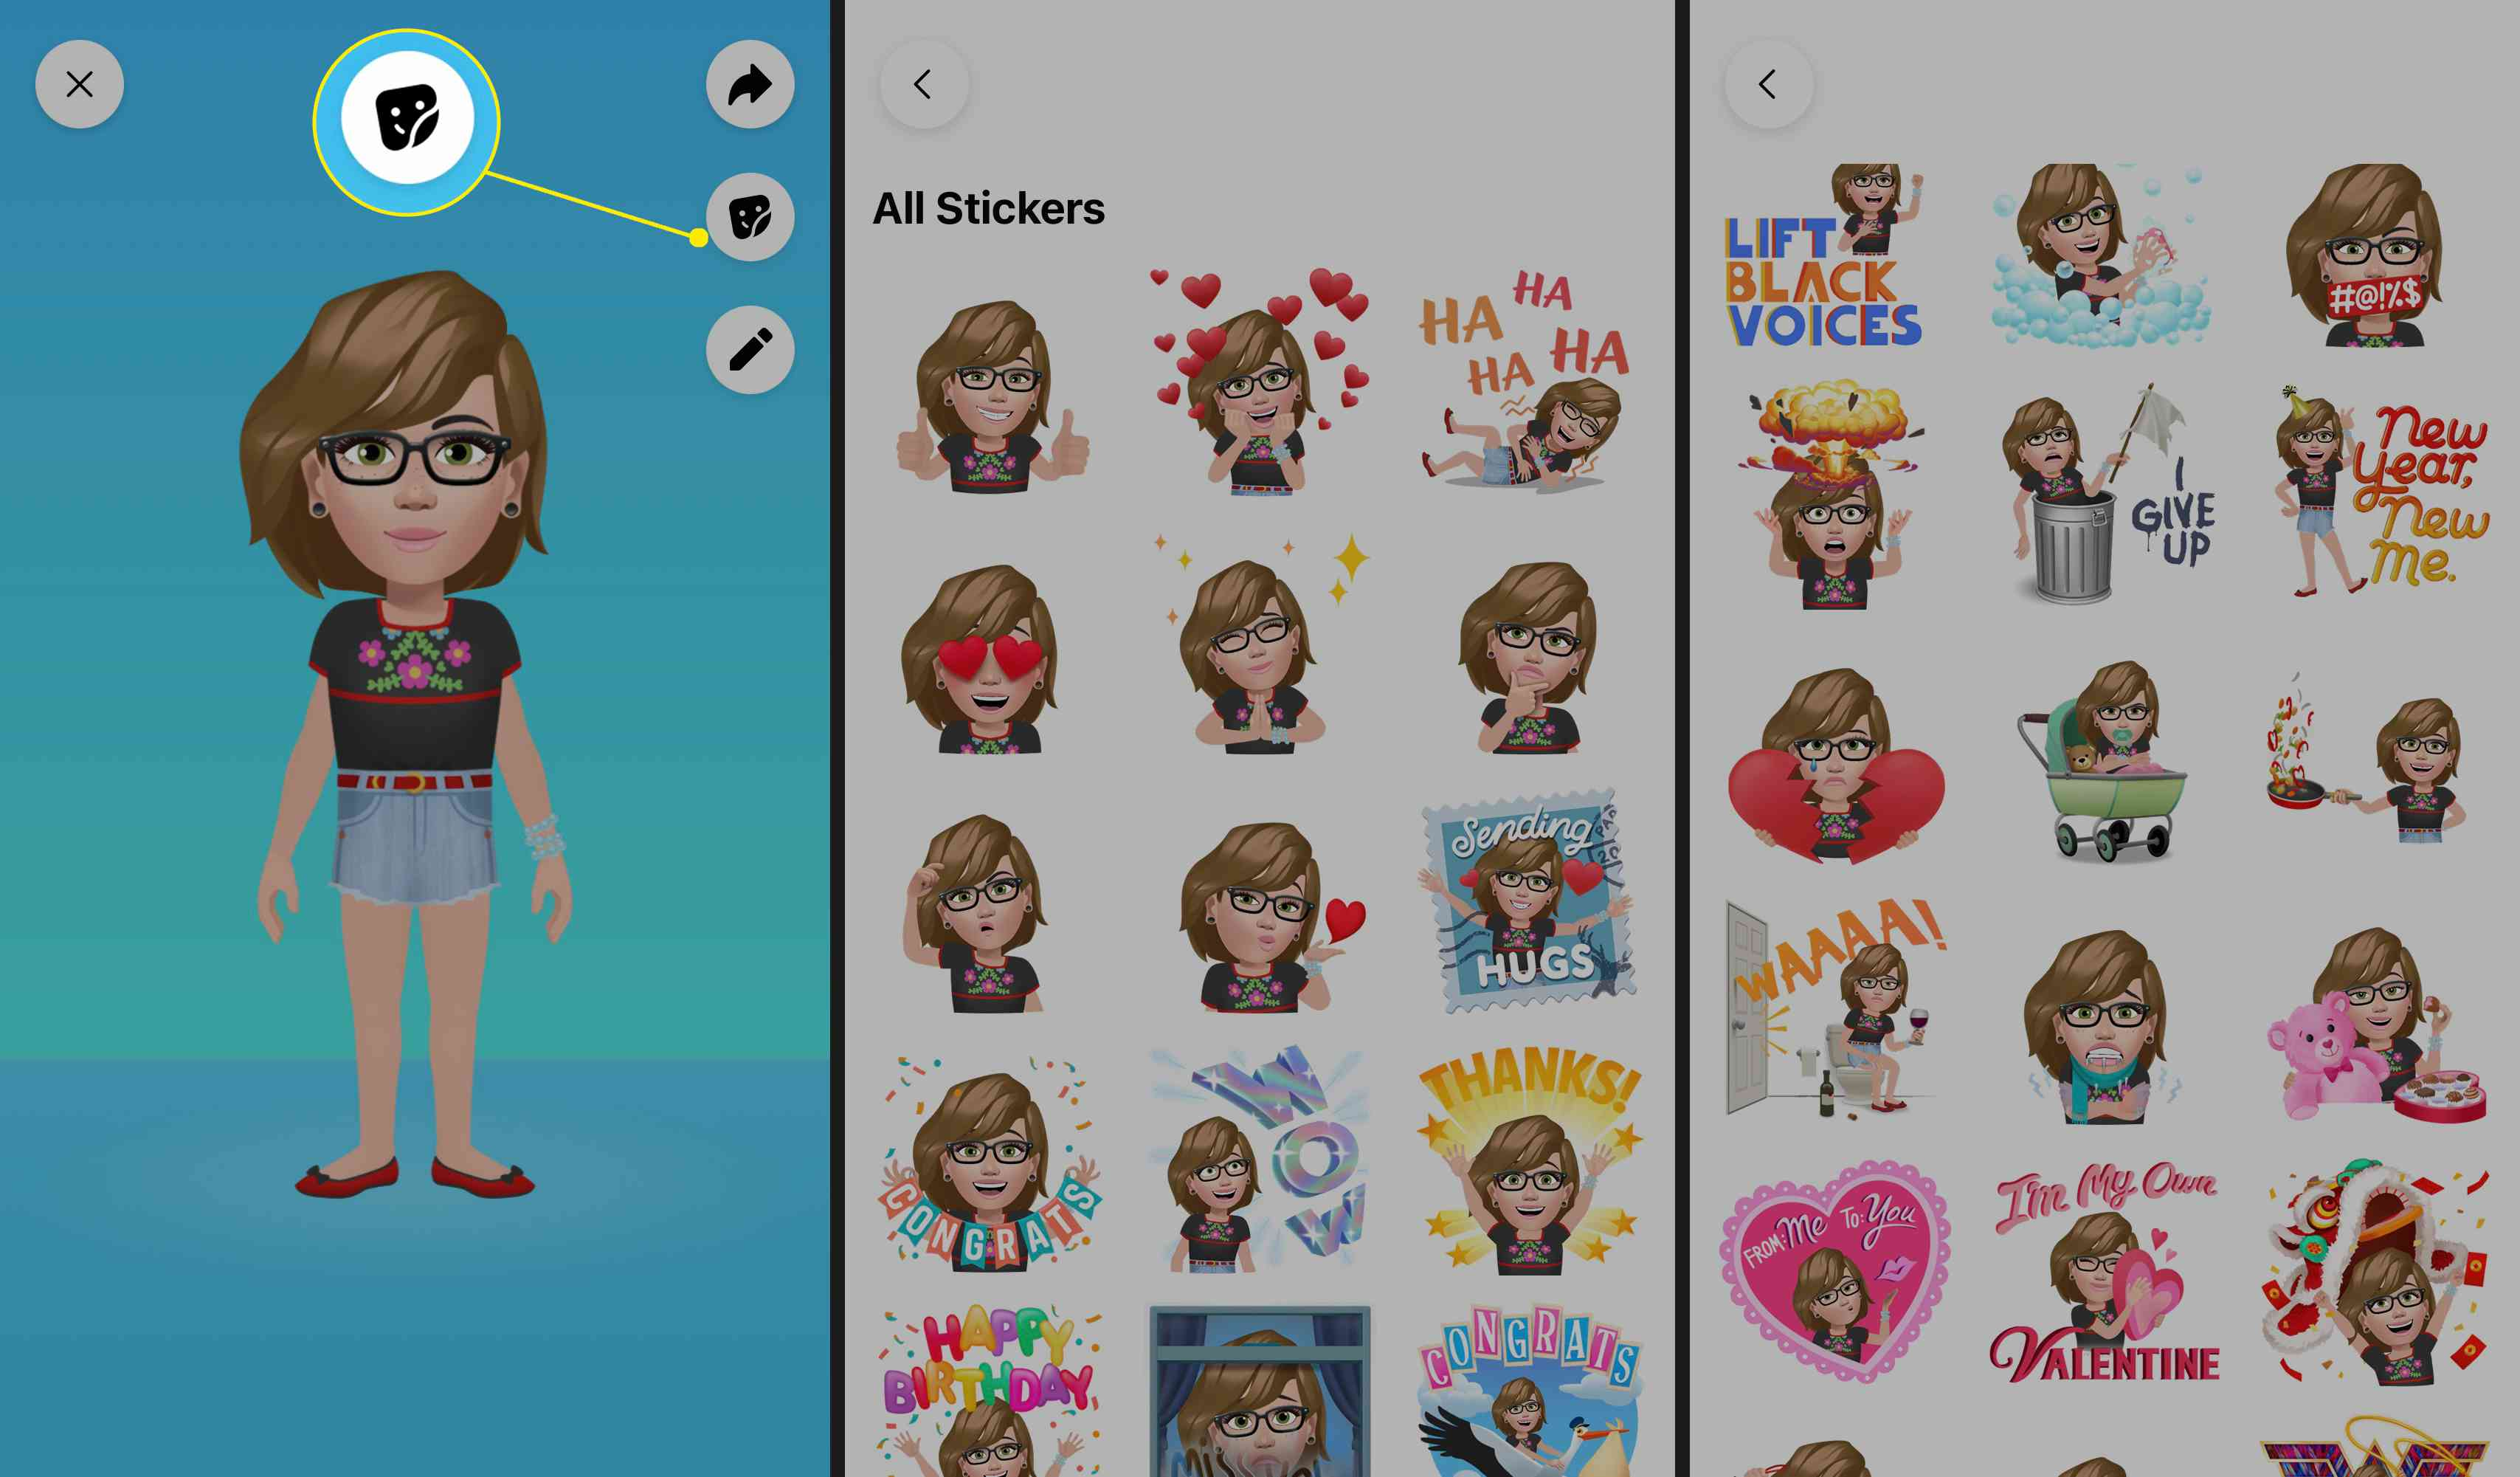 Go to your Avatar page and tap the Stickers icon. Scroll through to view all your available stickers.